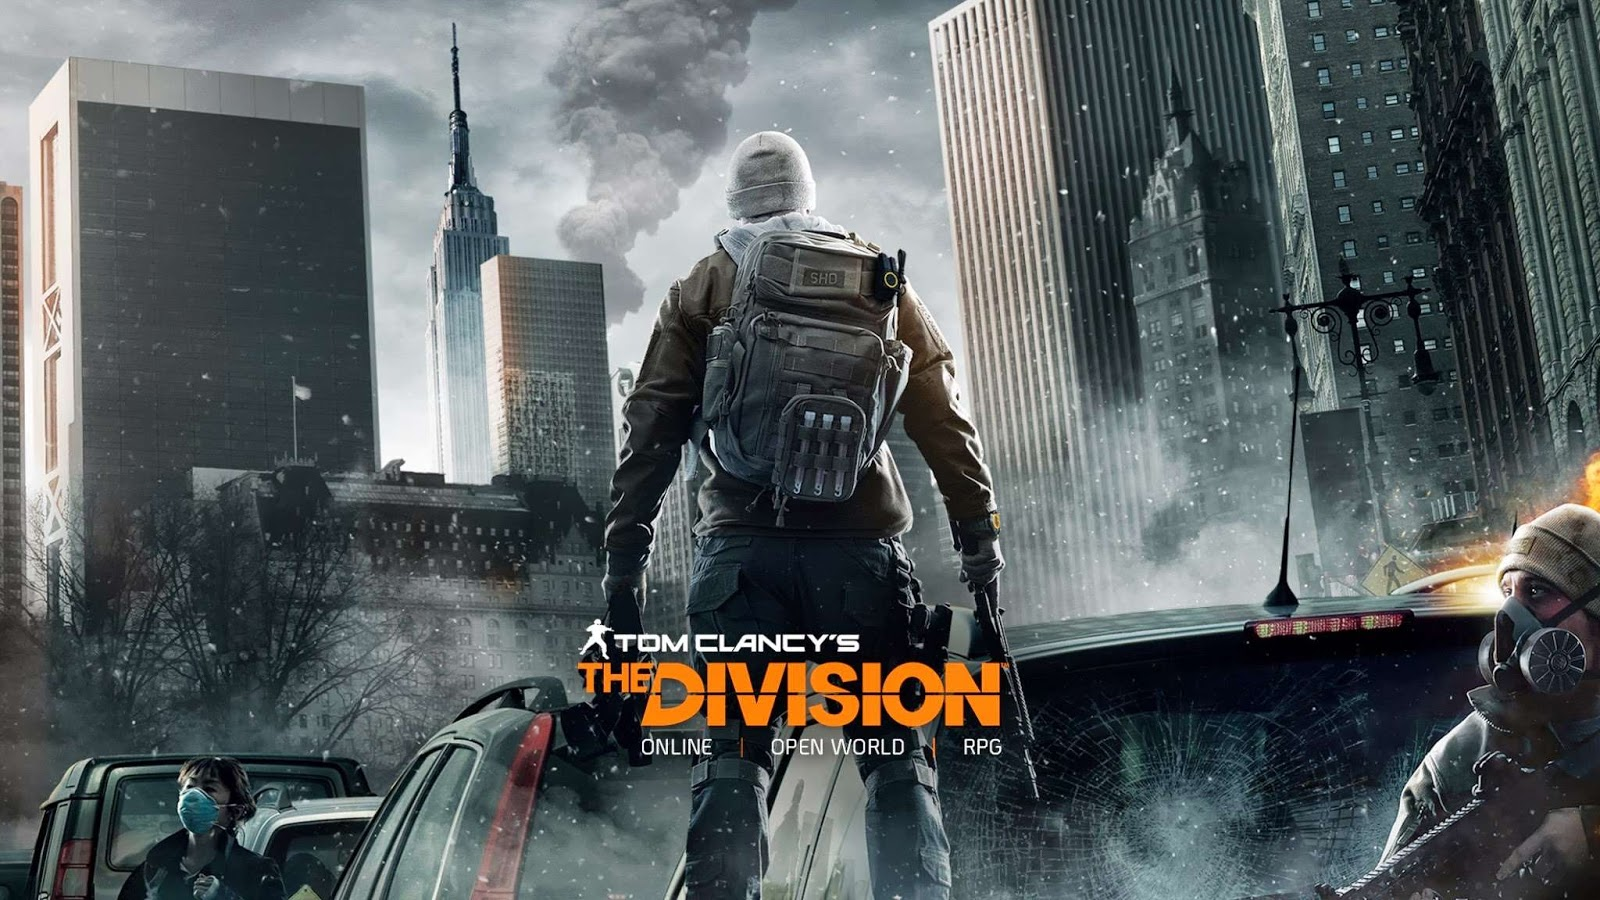 Tom Clancys The Division PC - Tom Clancy's The Division For PC